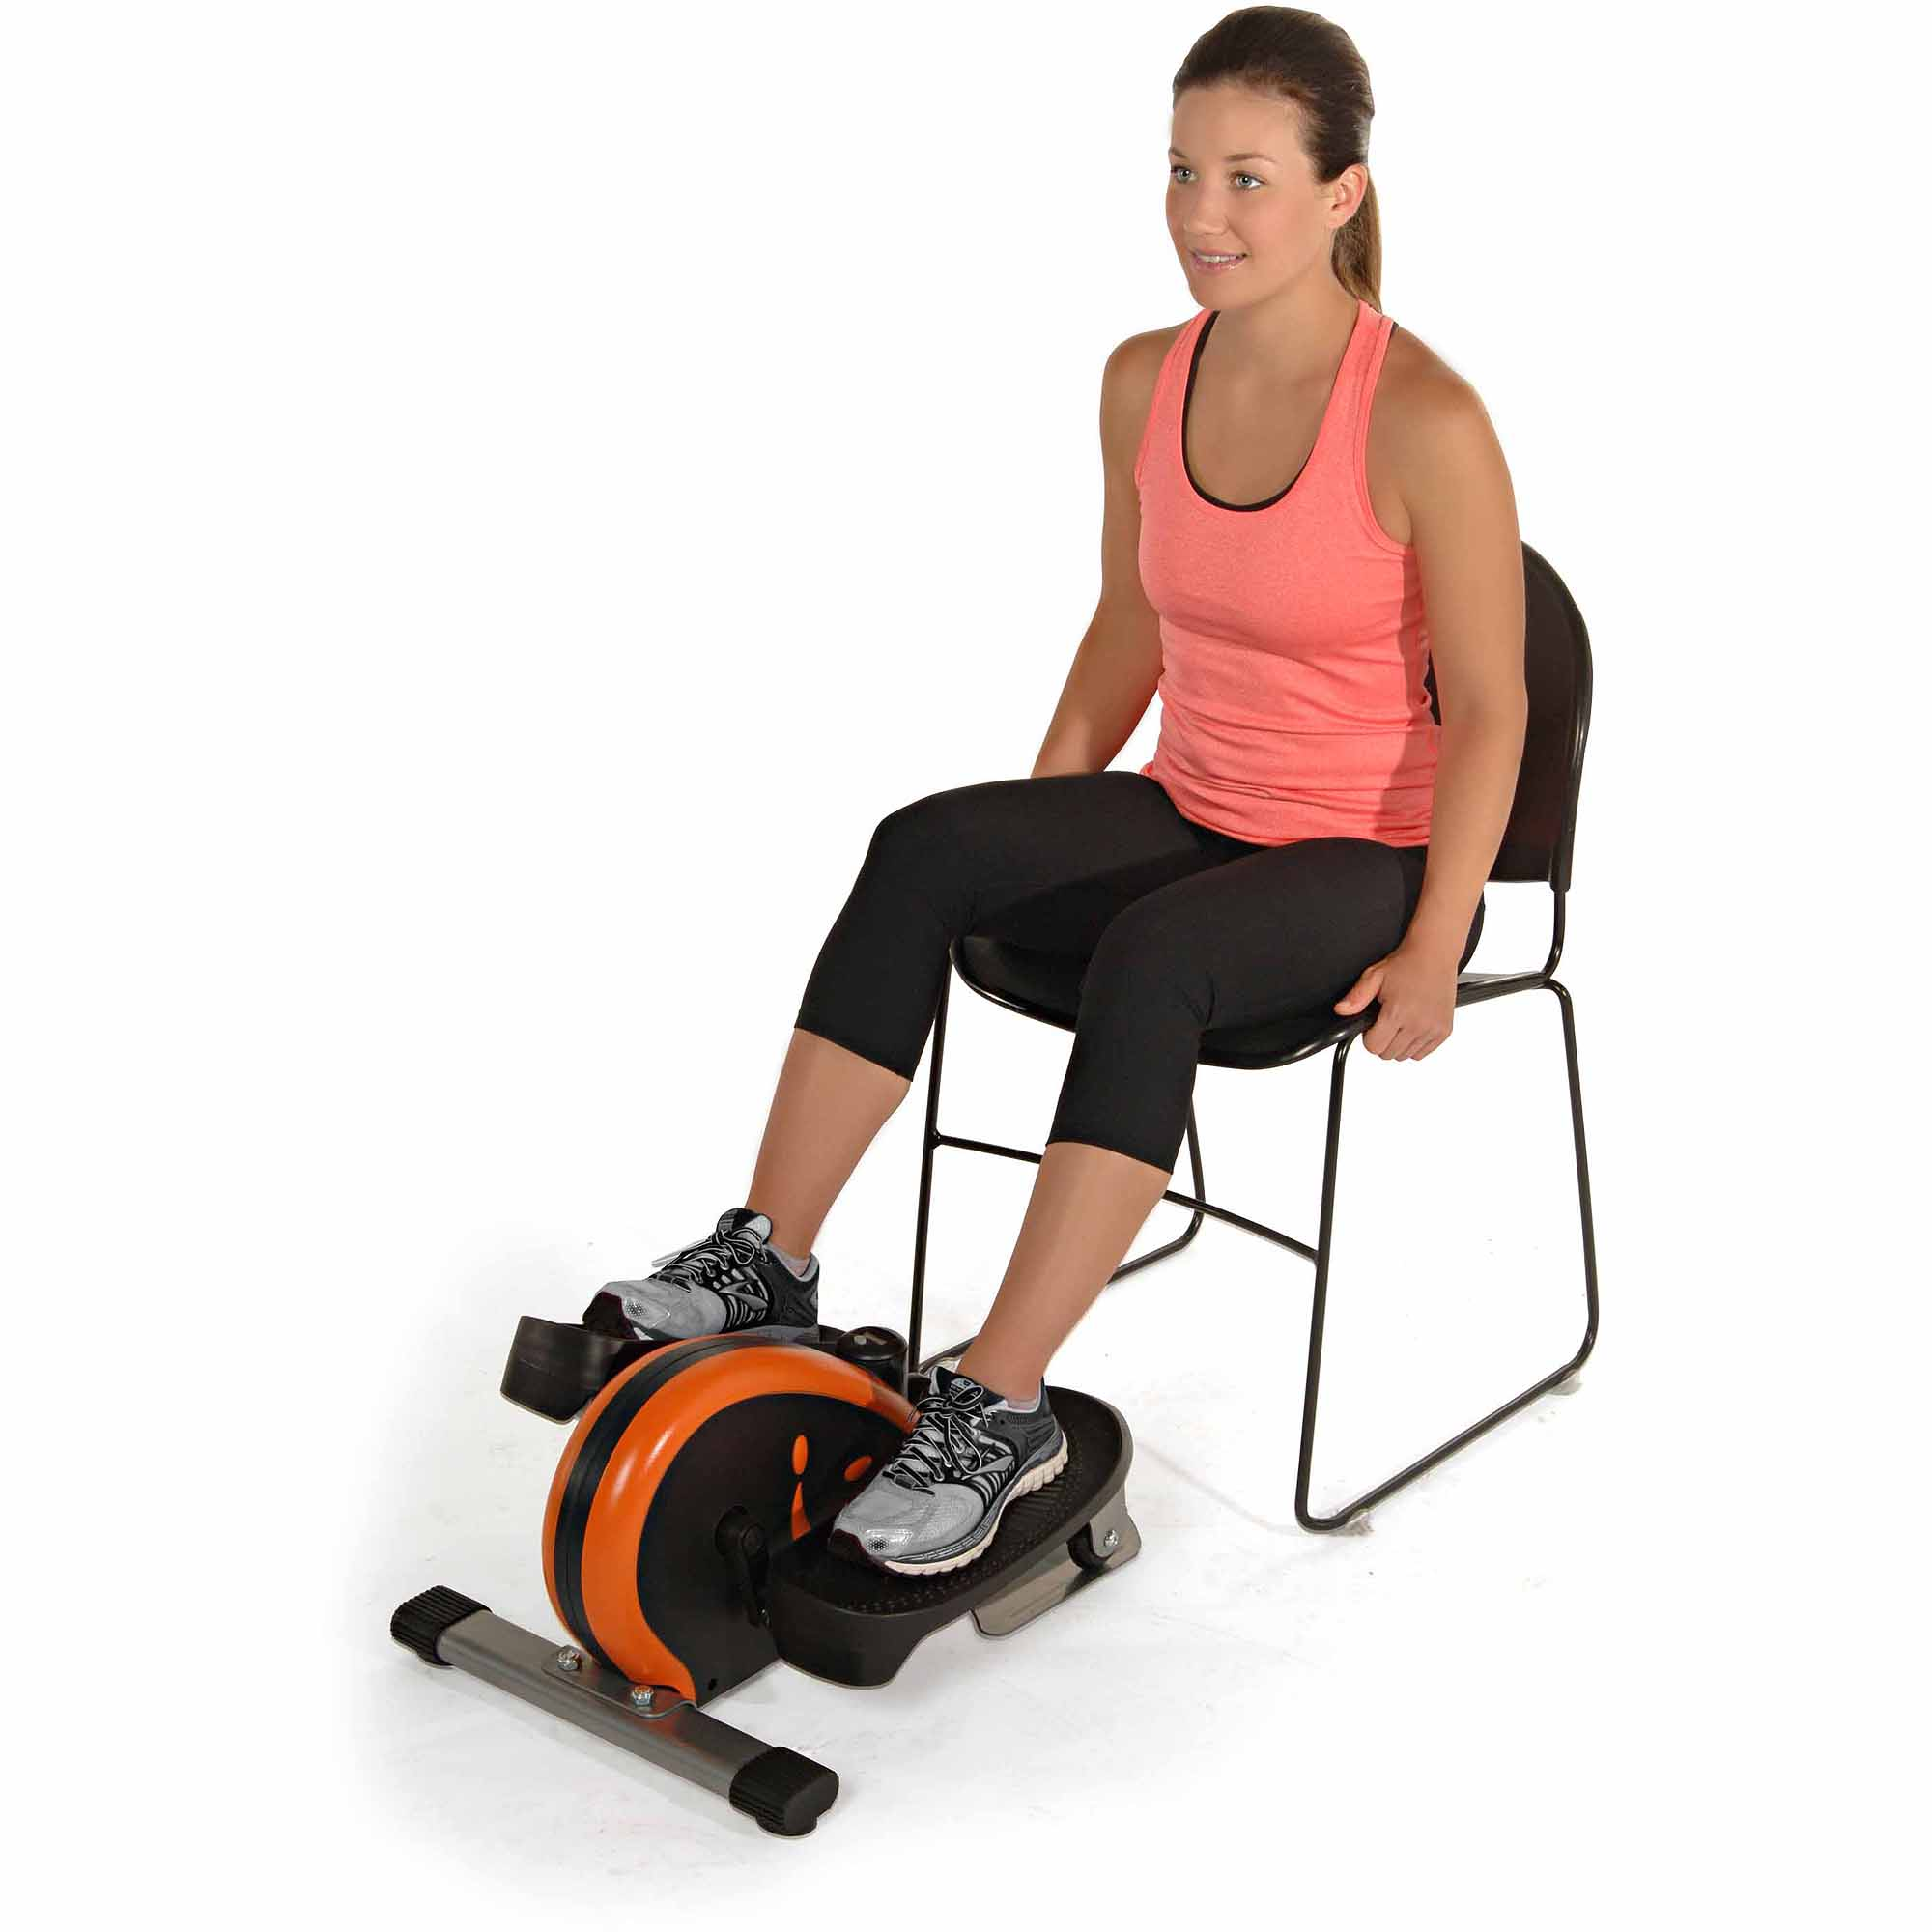 Stamina InMotion Elliptical Orange Walmartcom - Small elliptical for home